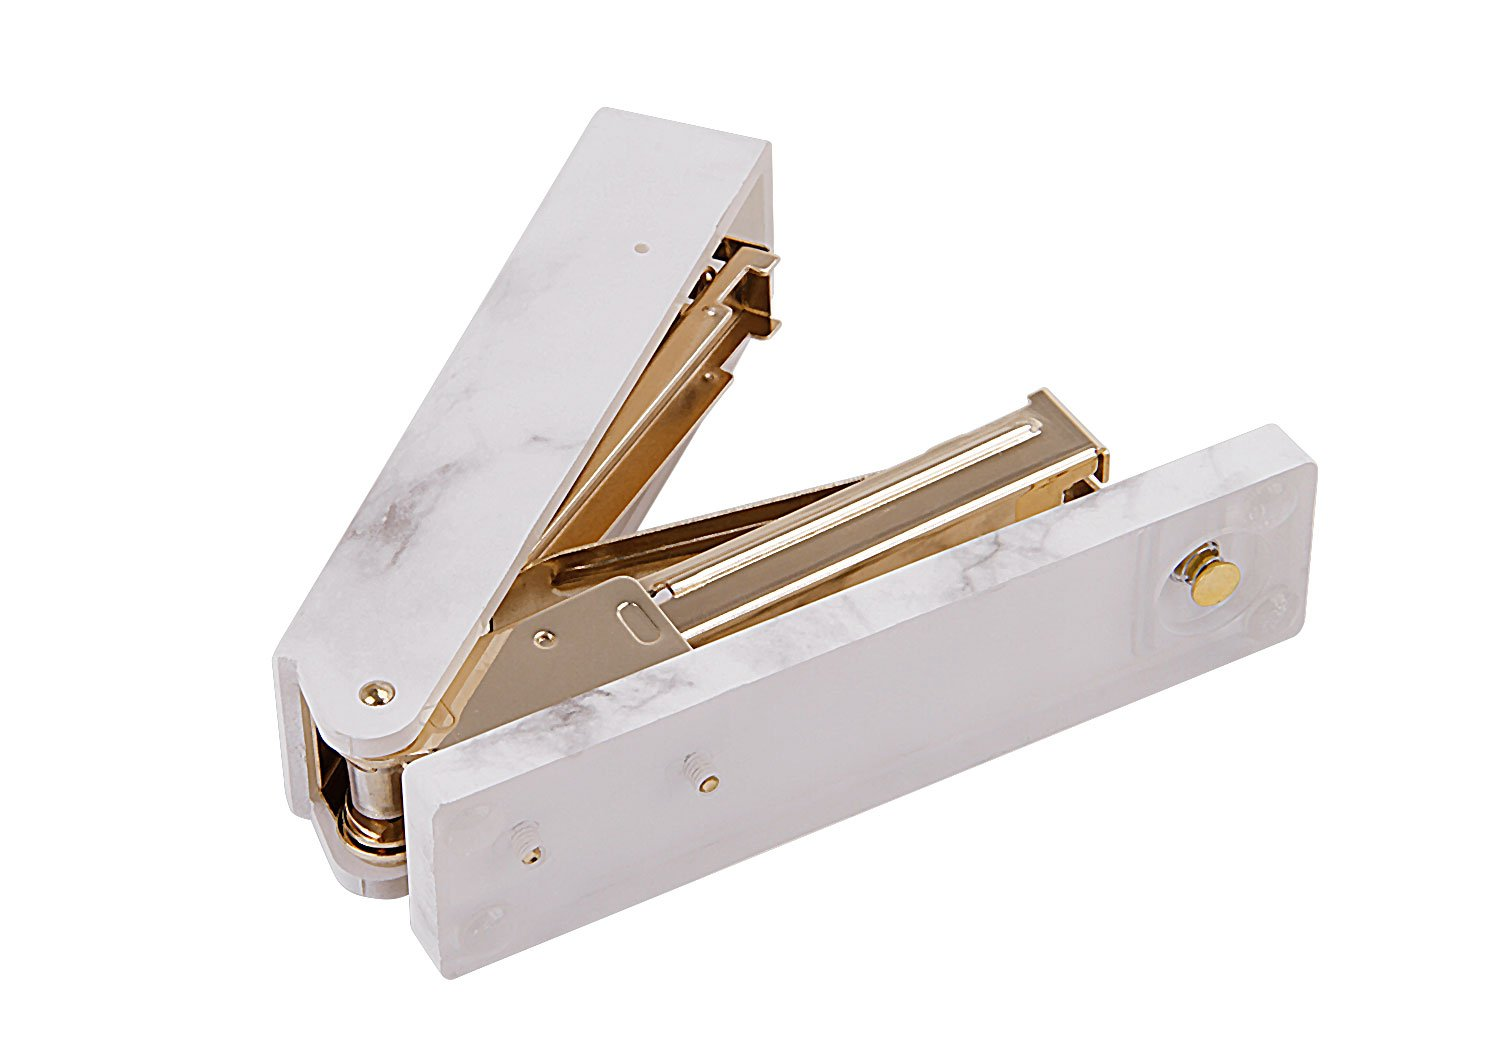 Heavy Duty Marble Stapler with Anti-Skip Pad School Office Must Sationary,Medium Manual Binding Stapler, Suitable for Staples 24/6,26/6 by BXT (Image #5)